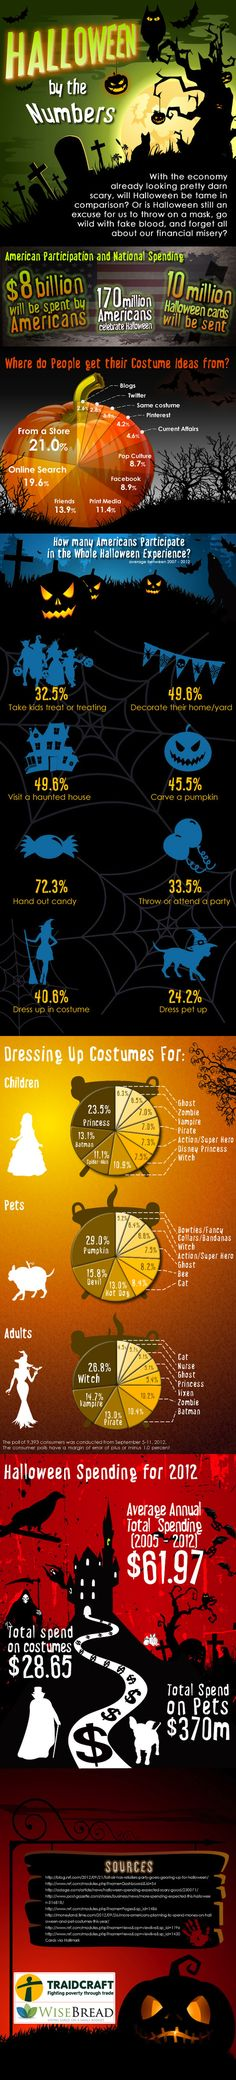 Americans Will Spend $ 8 Billion On Halloween This Year